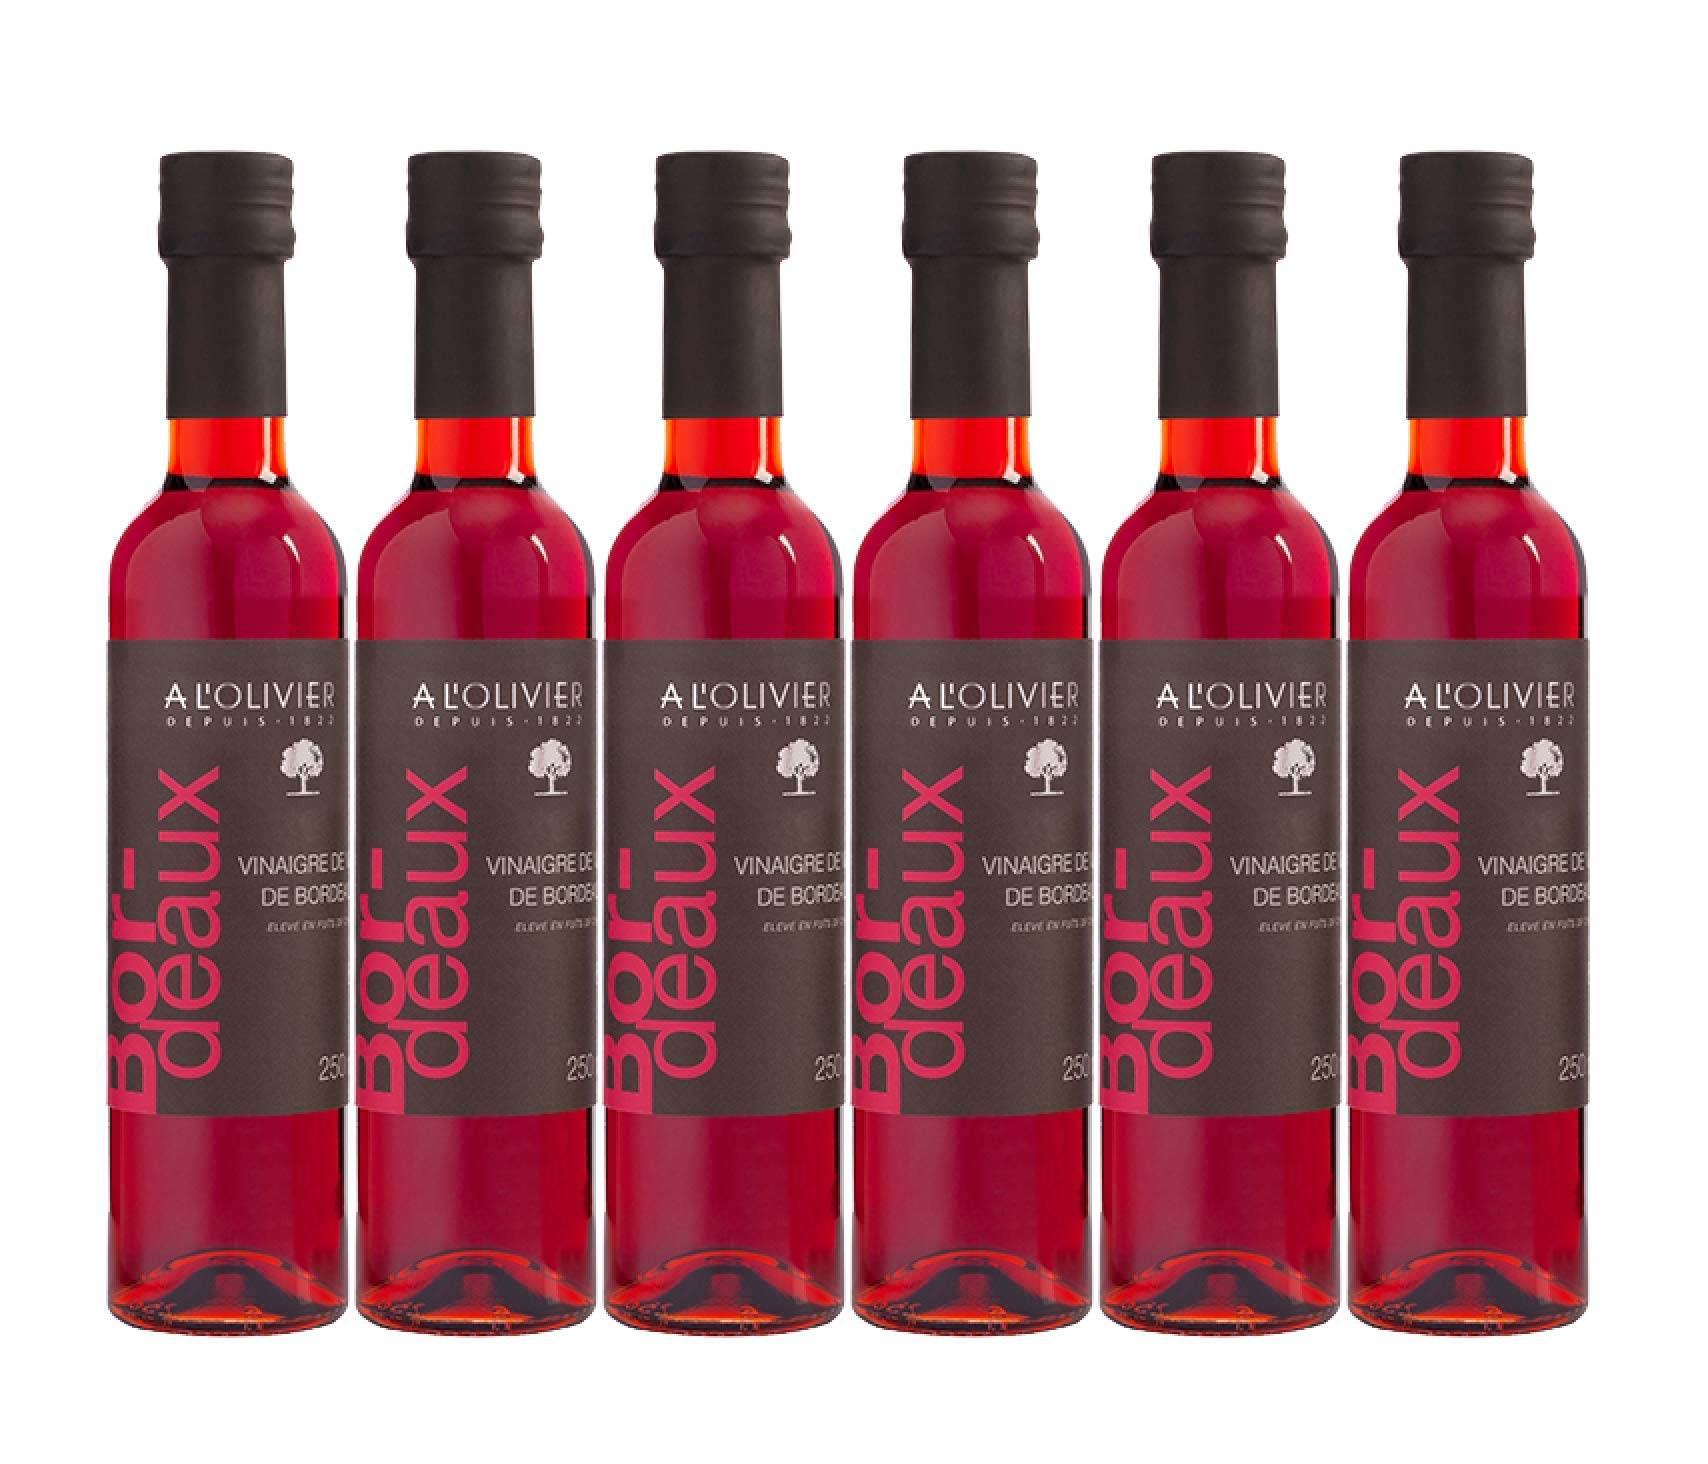 A L'OLIVIER RED WINE VINEGAR FROM BORDEAUX, MADE IN FRANCE - 8.4 Fl Oz   PACK OF 6 by A L'Olivier